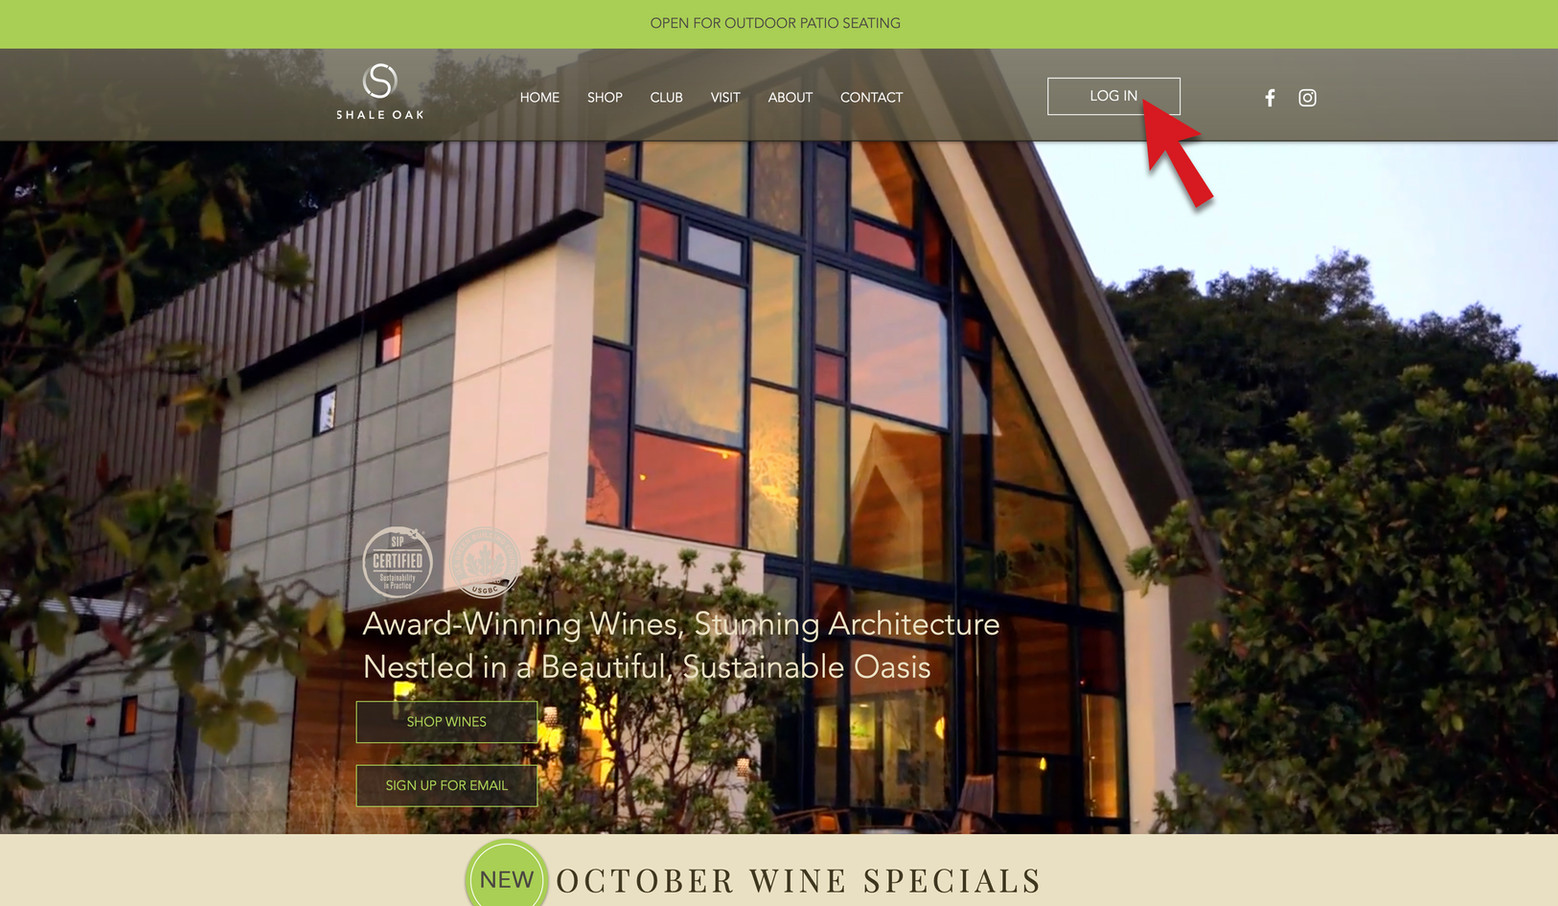 """Membership Login - If this is your first time logging on to the new Shale Oak website, you will need to set a password. Please note that some members that have previously logged in to the new website, may need to reset their password since new software was updated October 5, 2020. Go to the """"Sign In"""" button at the top right of the Home Page."""